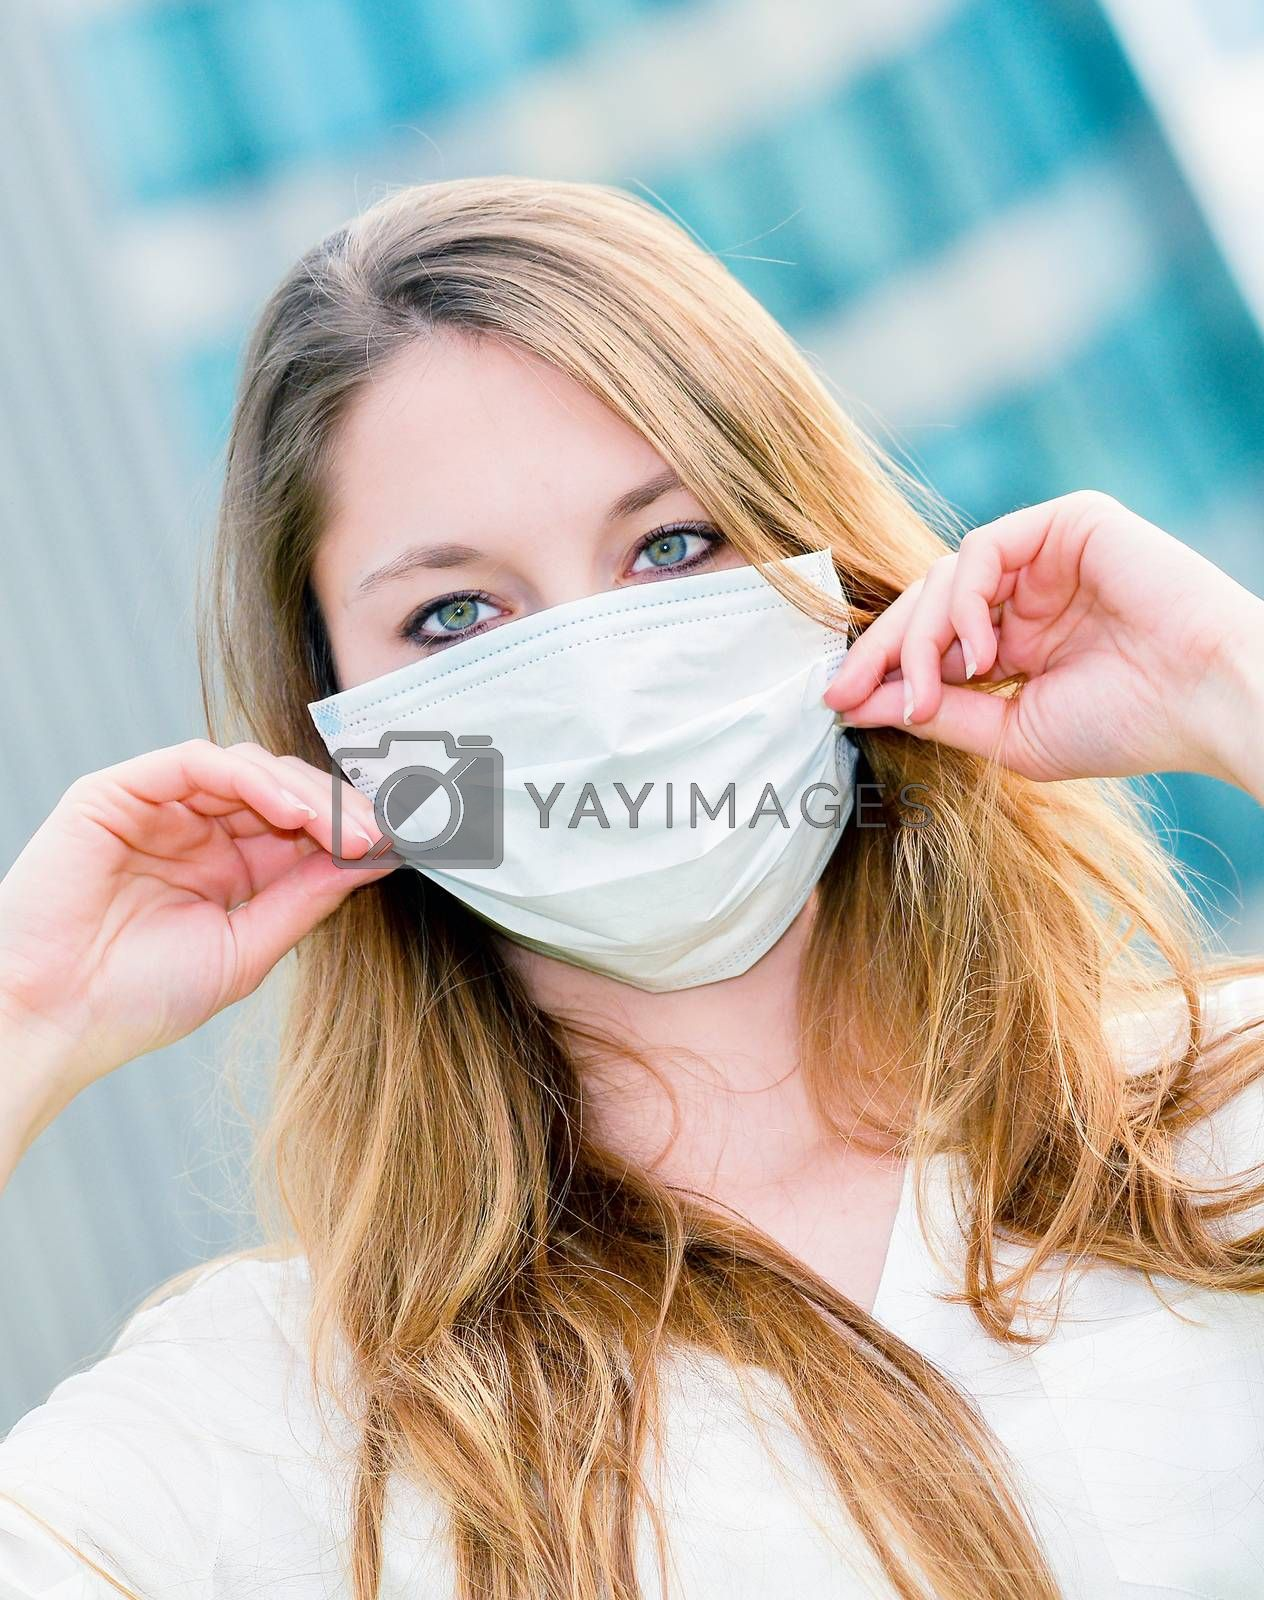 Royalty free image of Junior executives dynamics  wearing protective face mask against by pixinoo